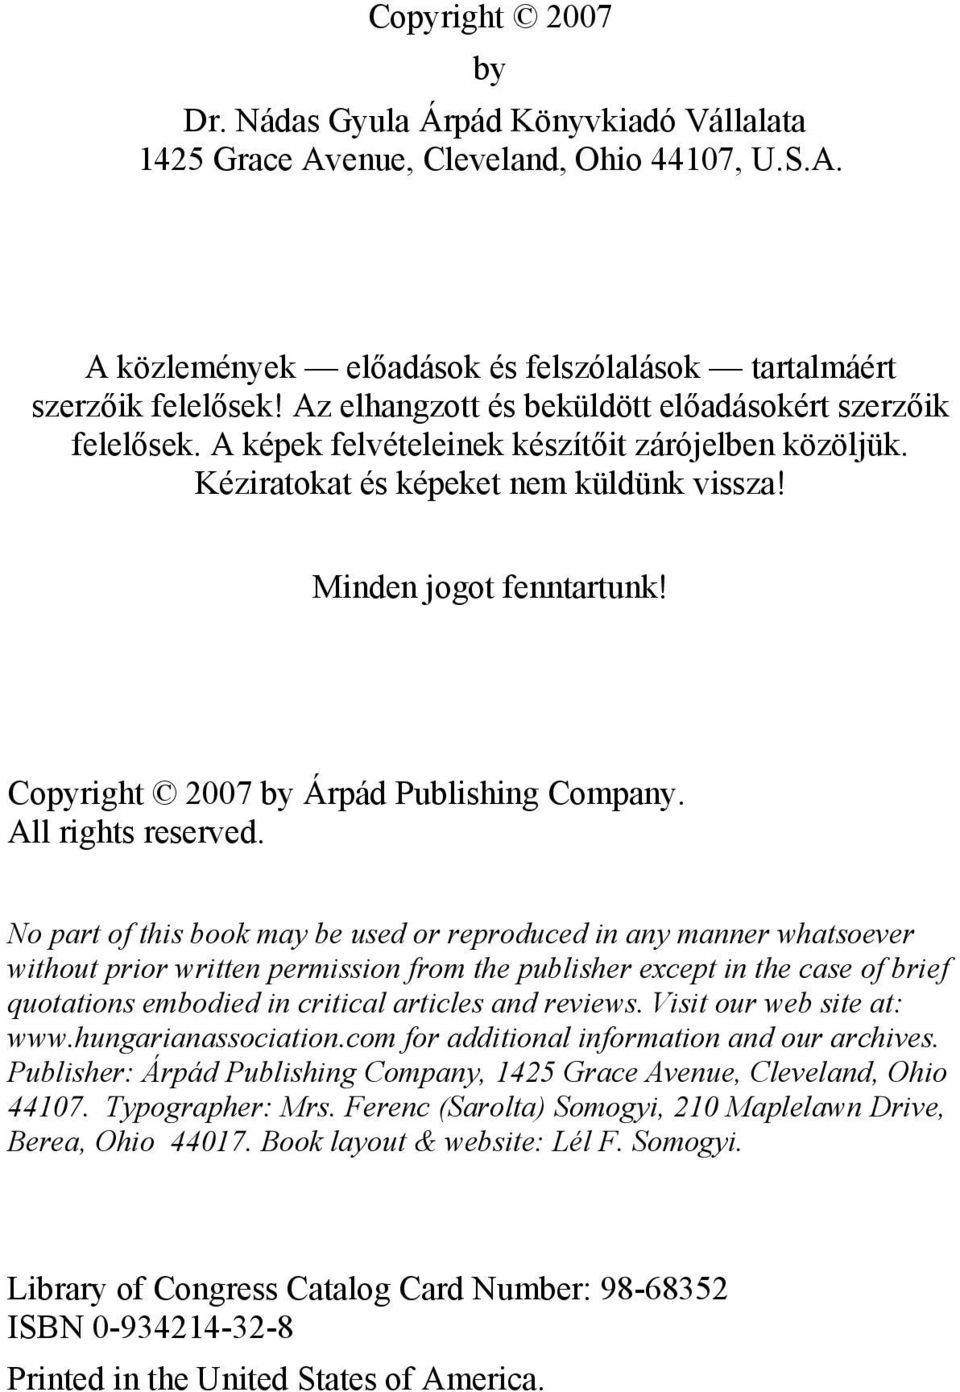 Copyright 2007 by Árpád Publishing Company. All rights reserved.